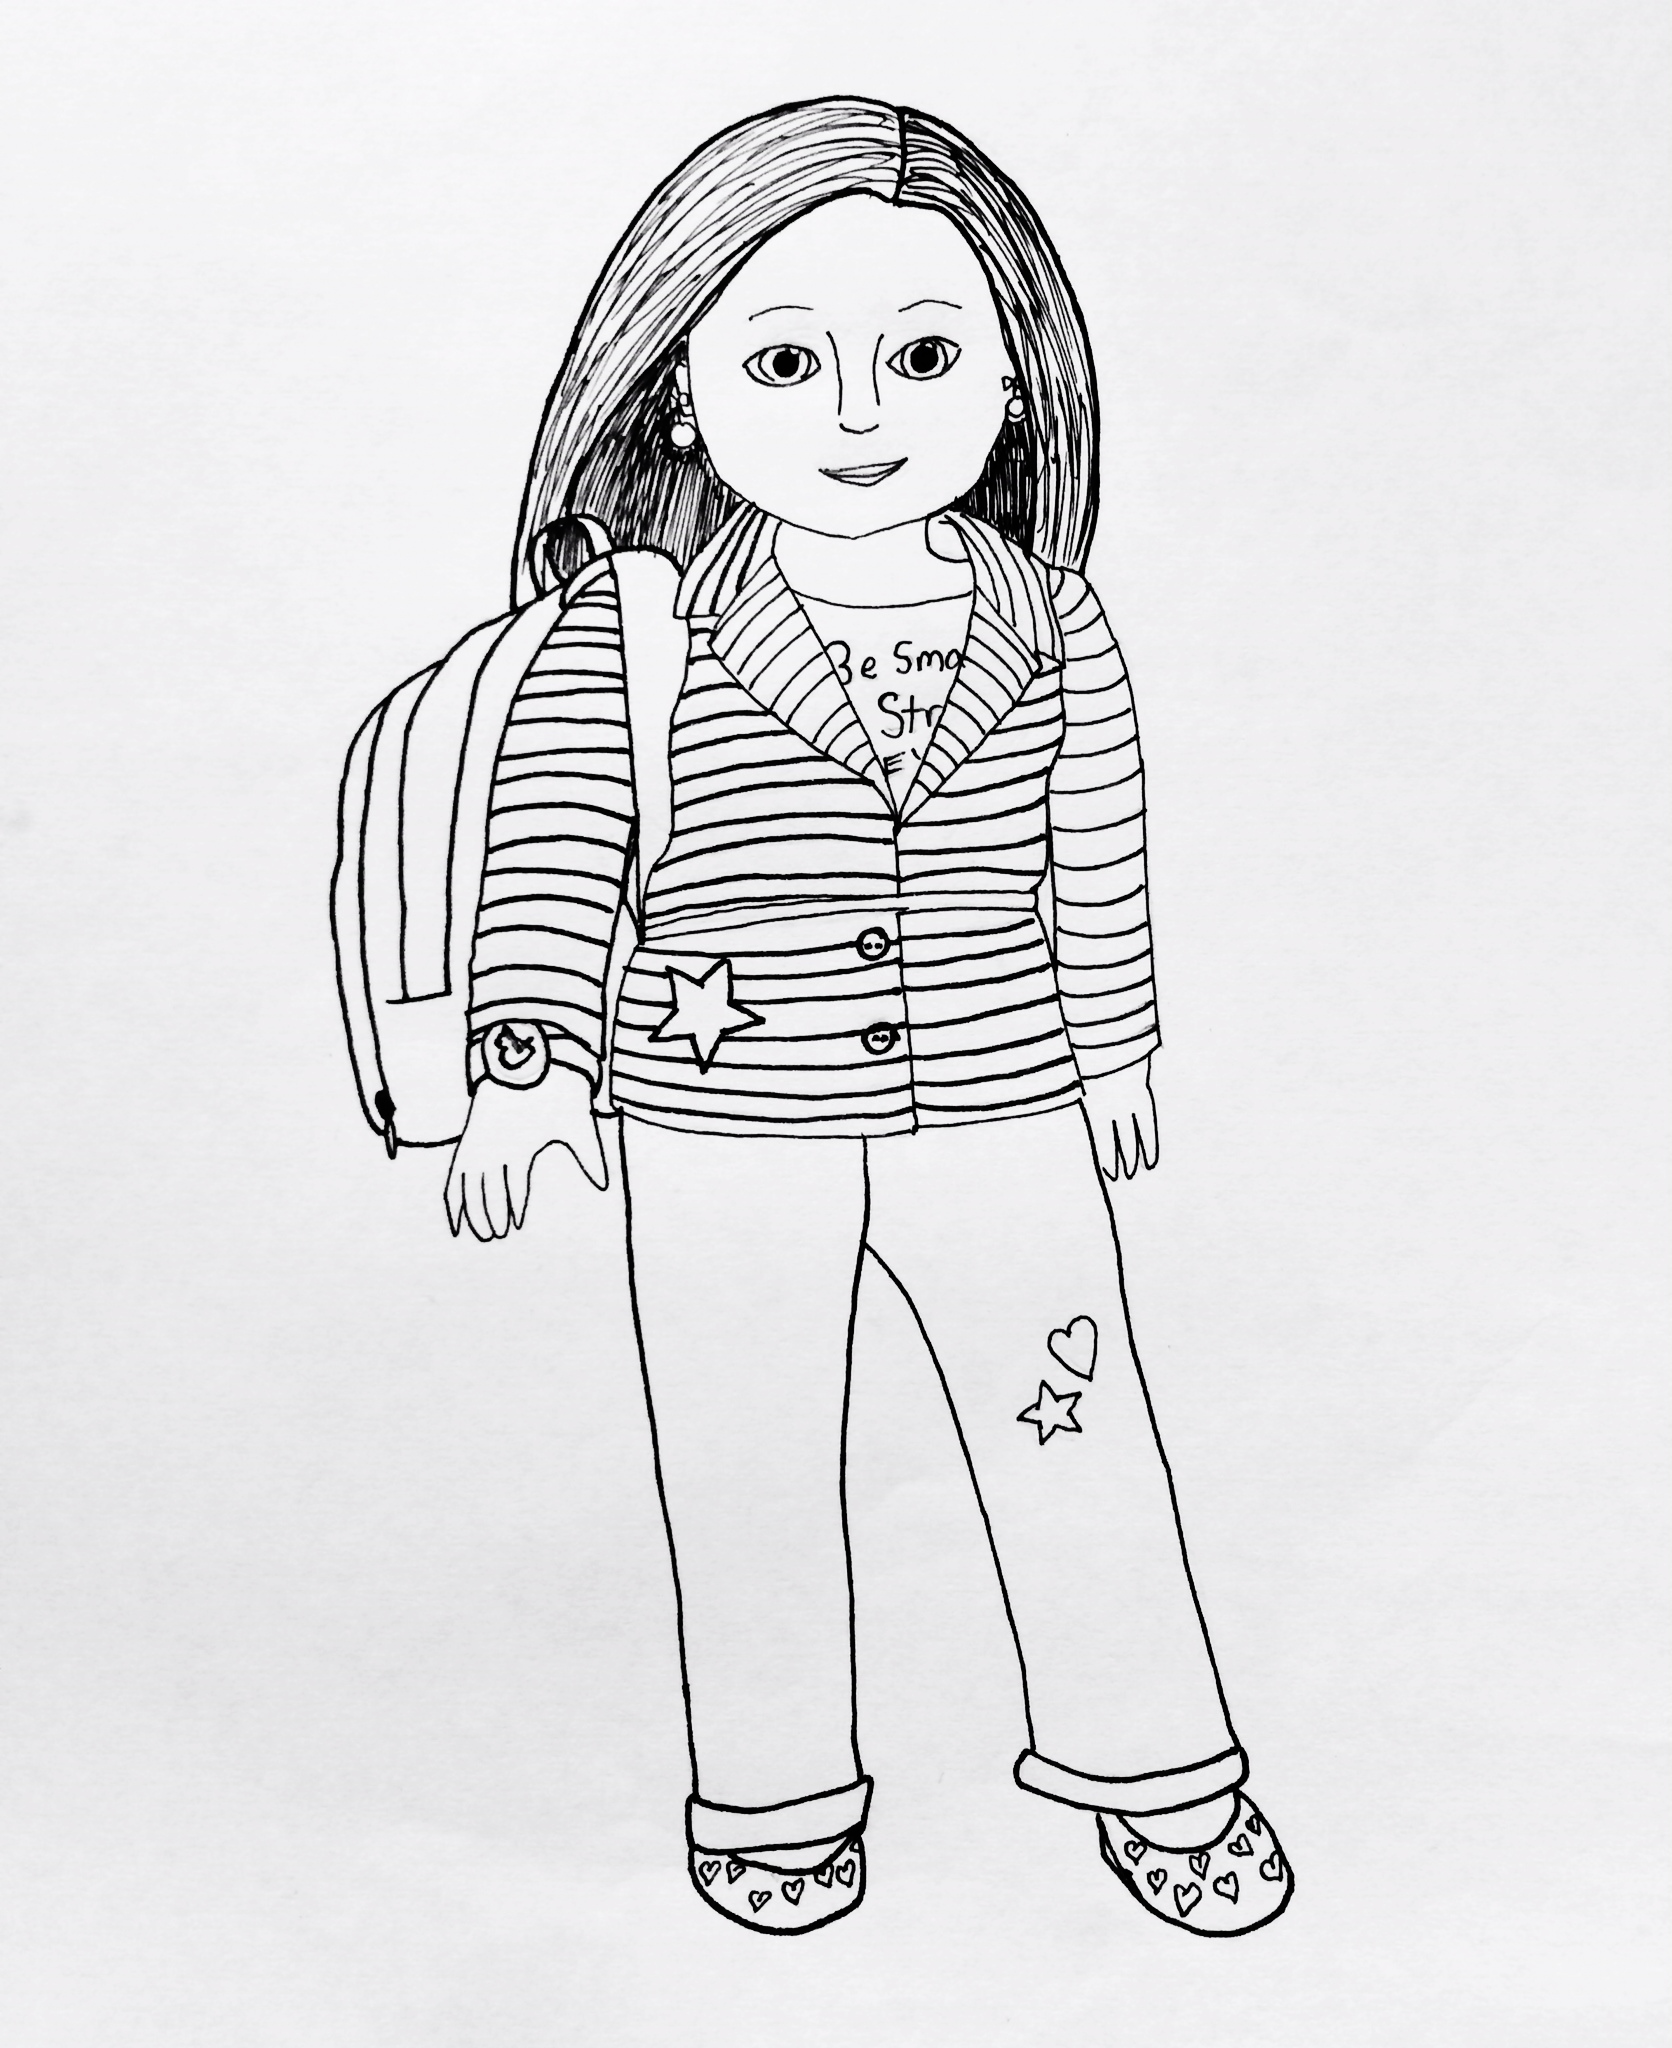 american girl doll coloring pages to download and print for free - Coloring Pages Print Girls